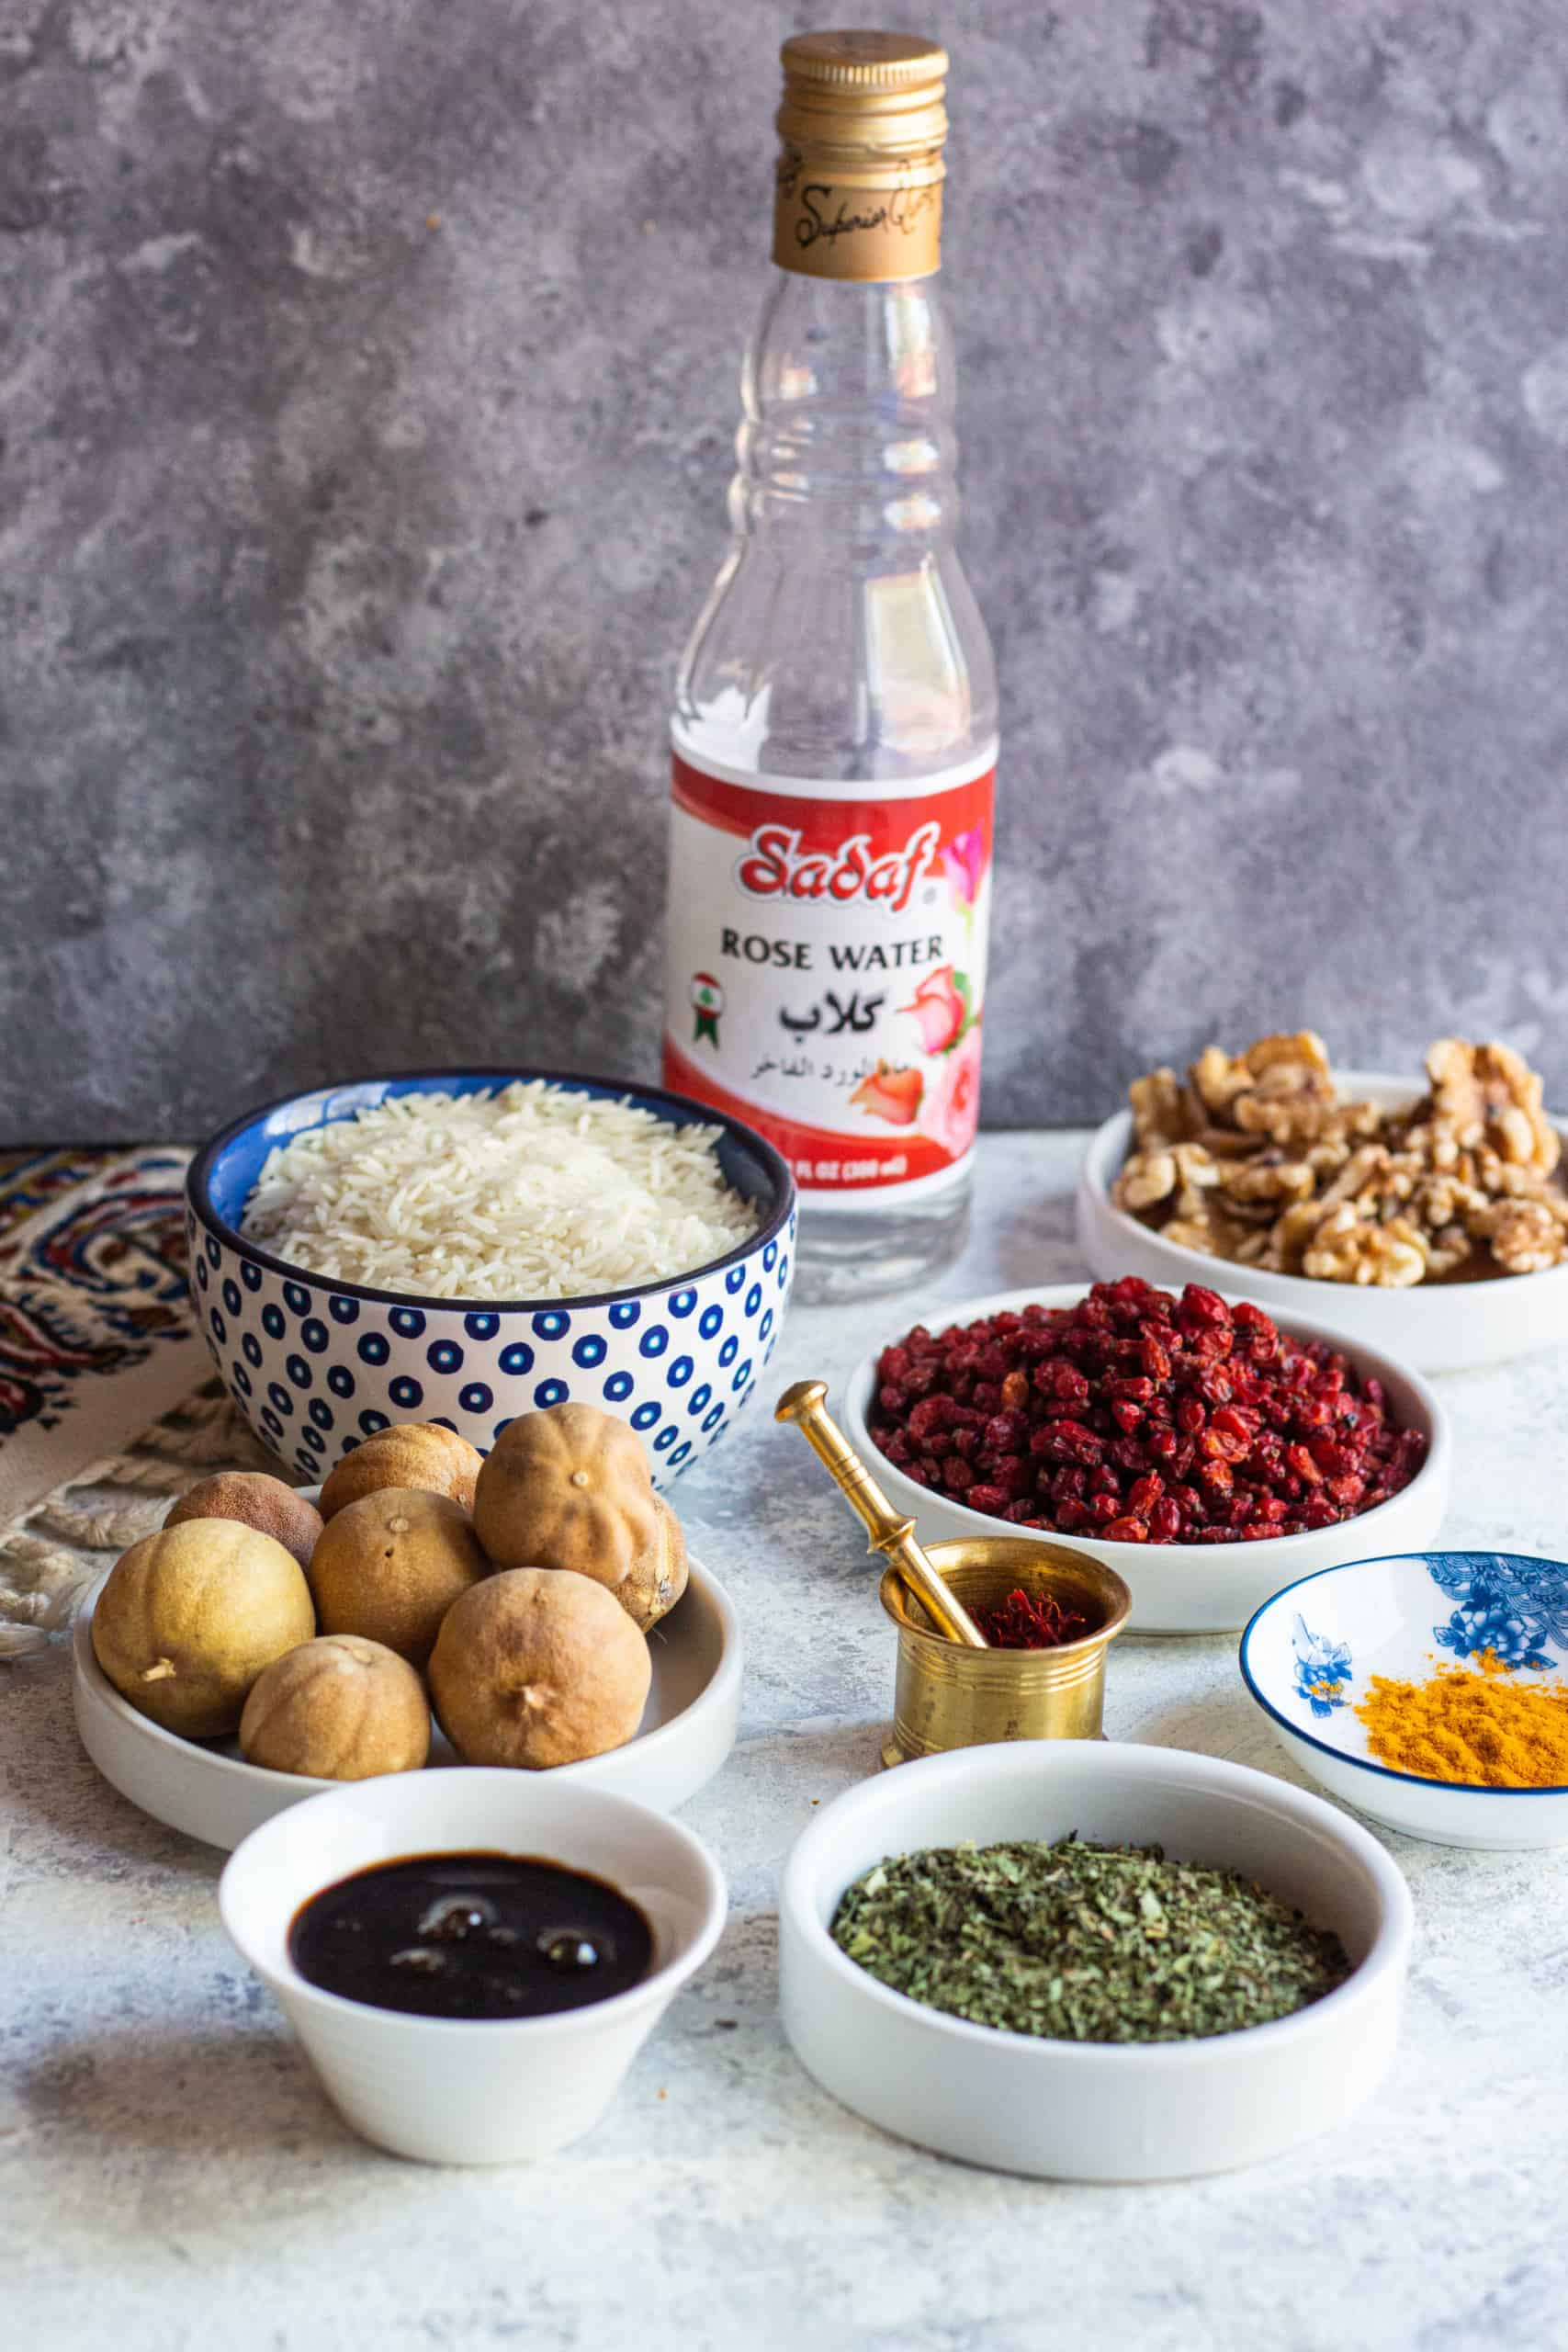 The items you need in your Persian pantry are rosewater, saffron, rice, barberries, pomegranate molasses, walnuts, dried lime, tomato paste and dried herbs.